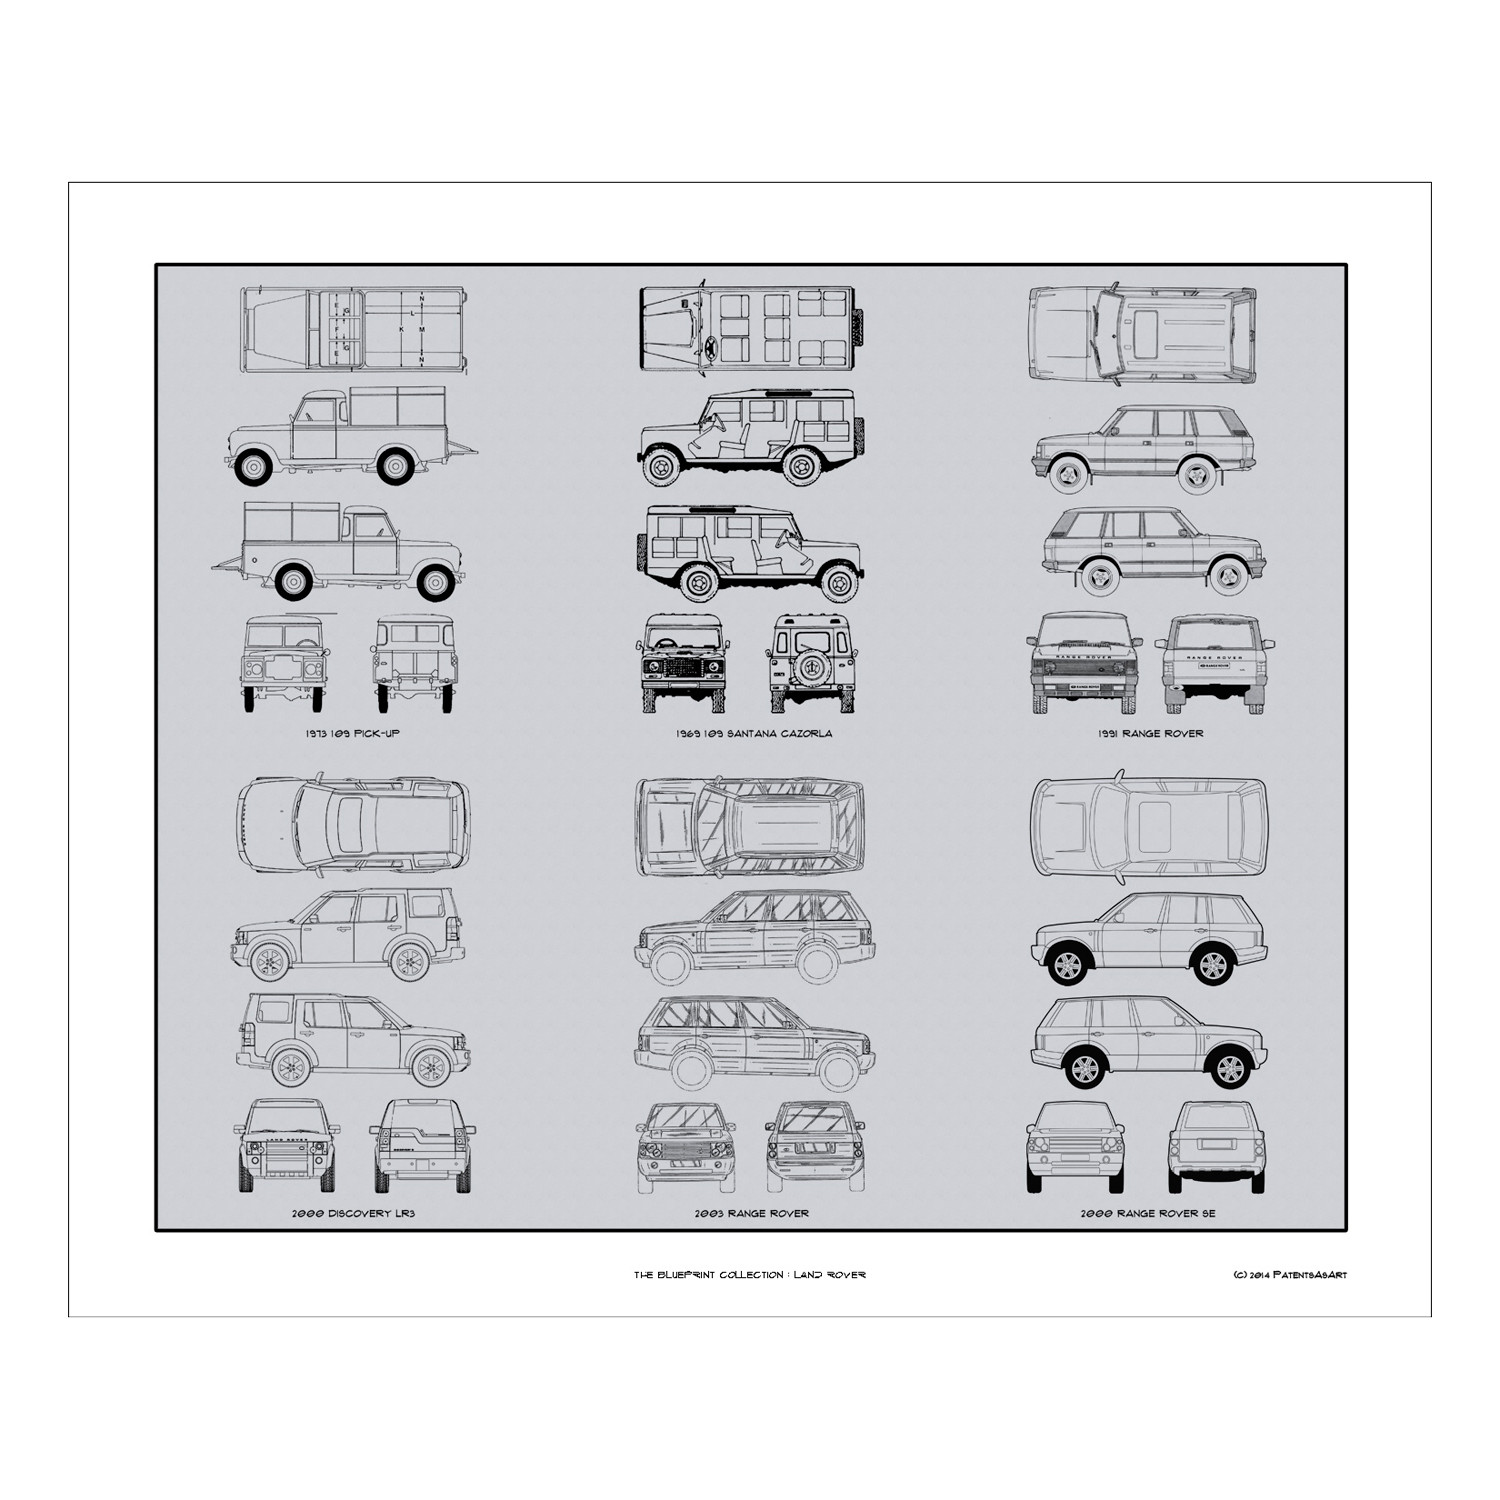 Land rover blueprint collection automotive prints touch of modern land rover blueprint collection malvernweather Choice Image